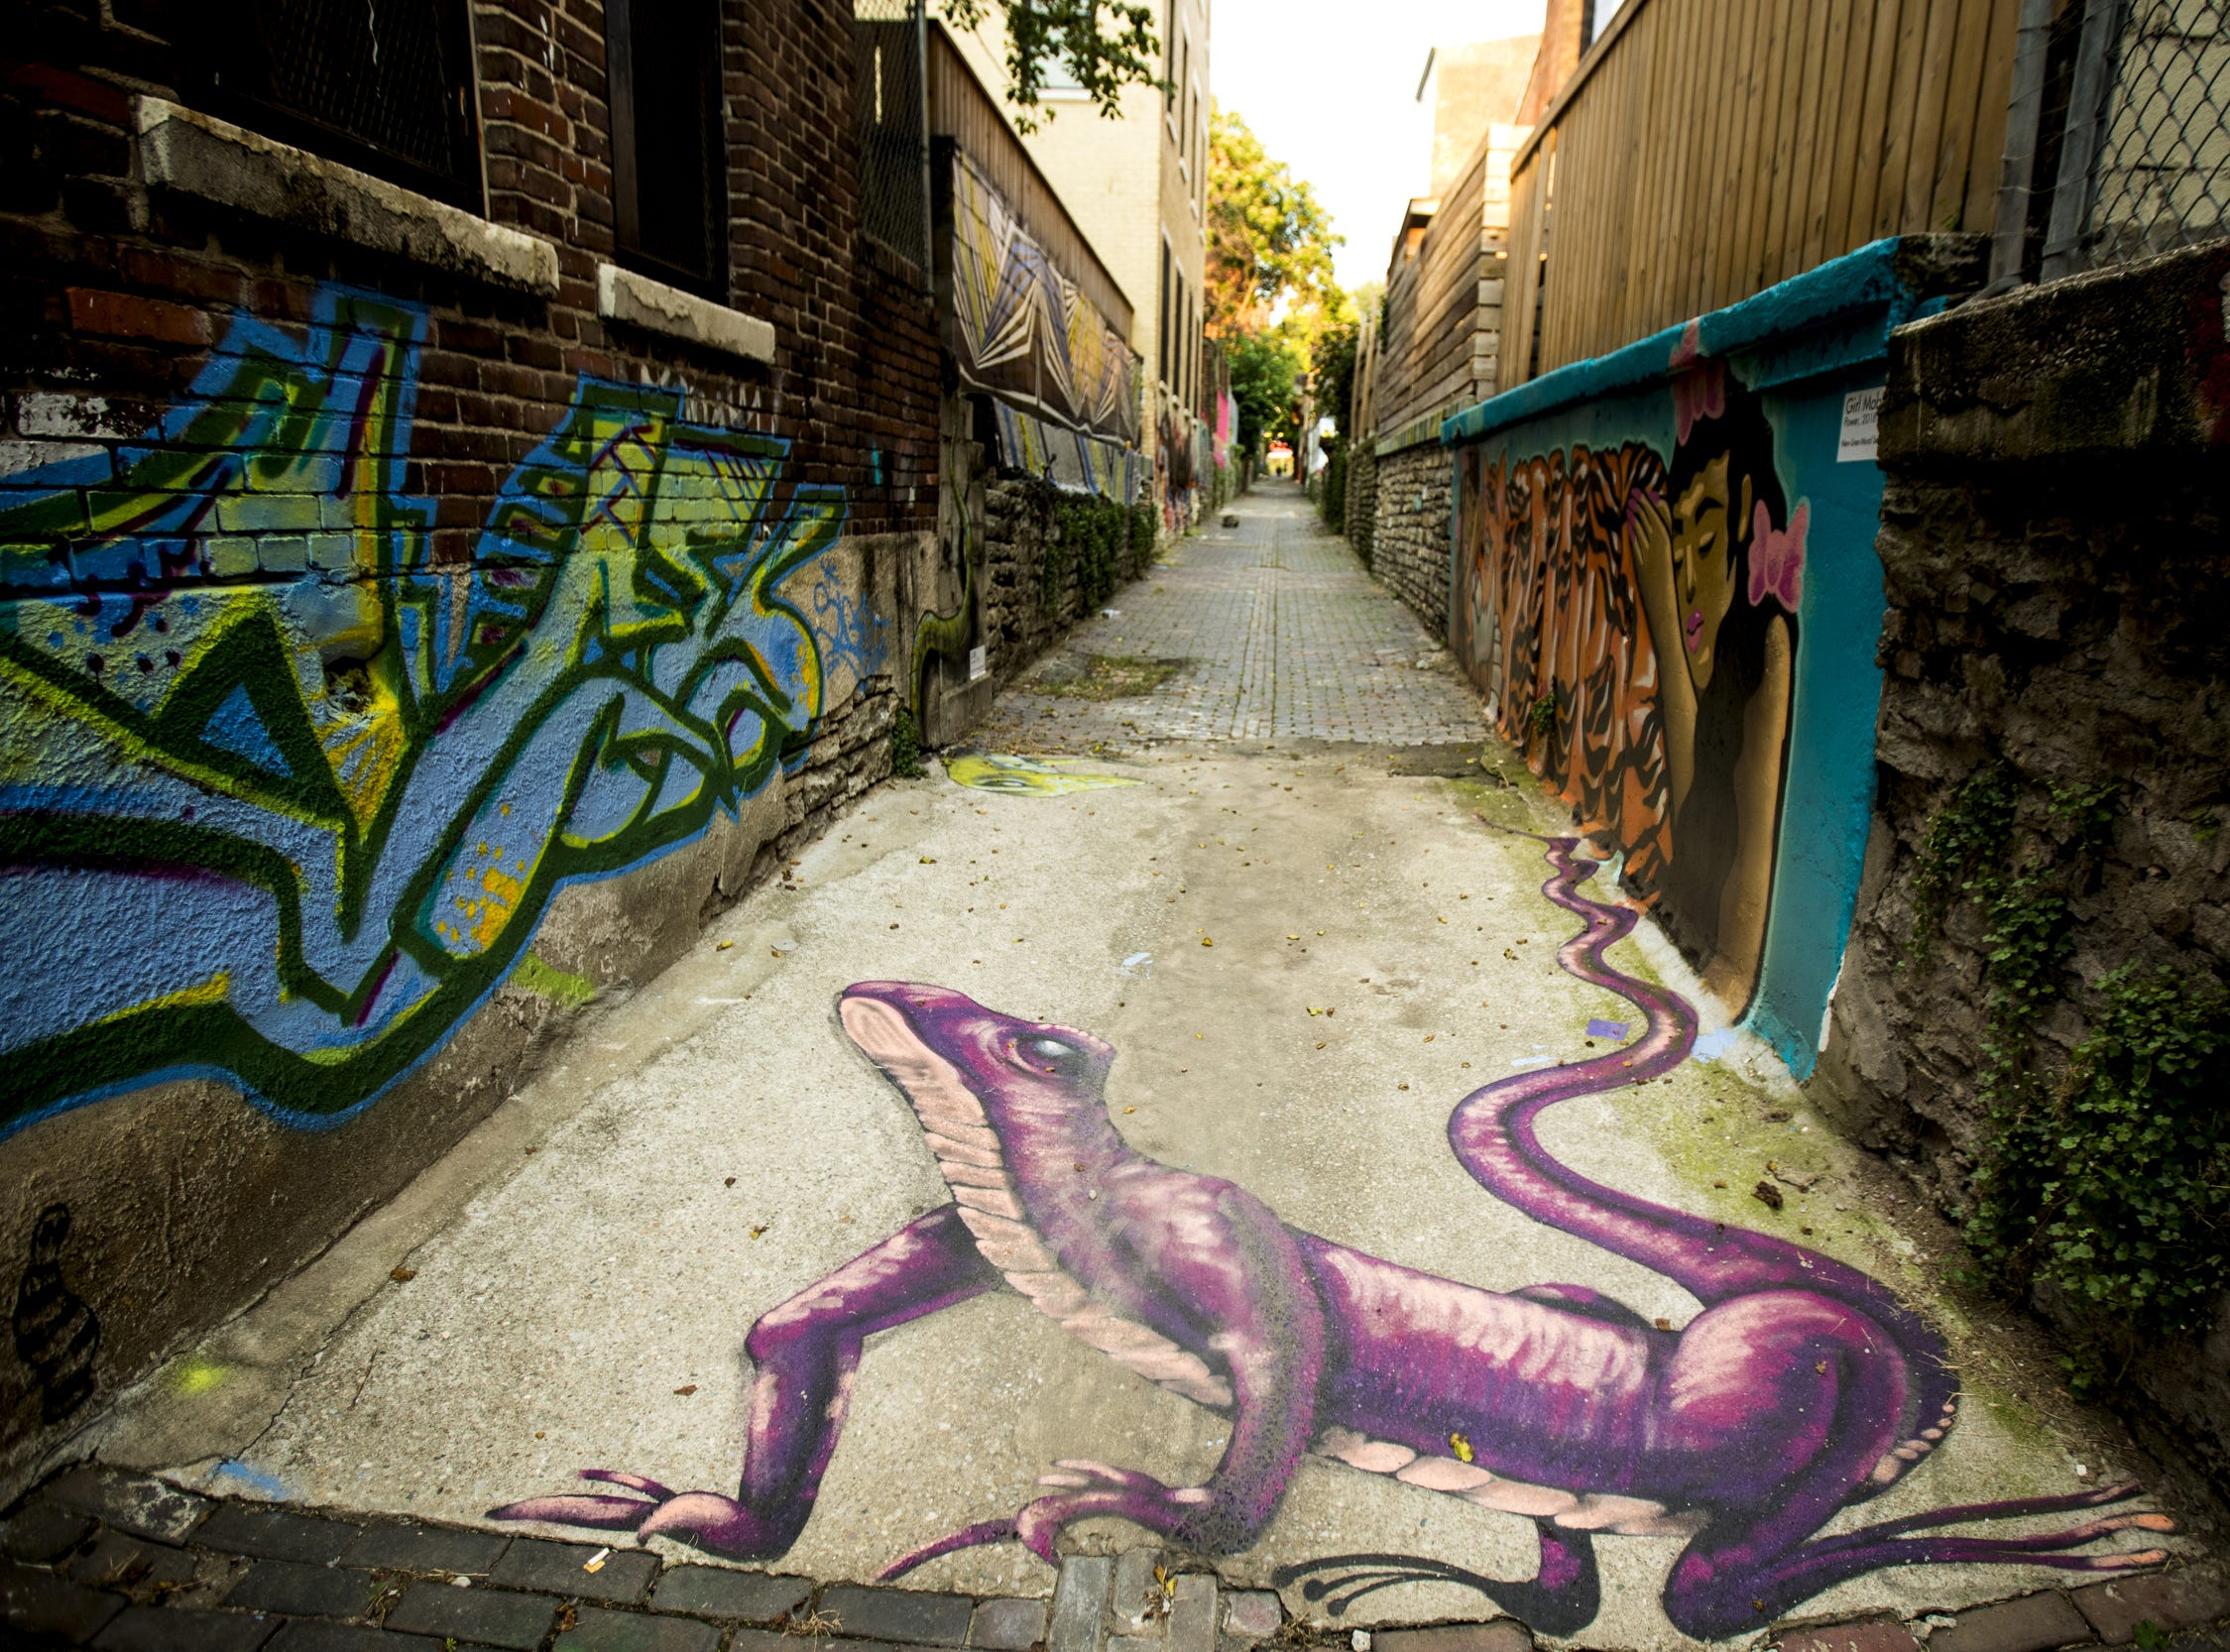 Wednesday, September 19, 2018: ÒLizzurdsÓ designed by OGRE is featured in Bolivar Alley in Pendleton as part of New Lines Alleyway Murals: Phase II by ArtWorks.